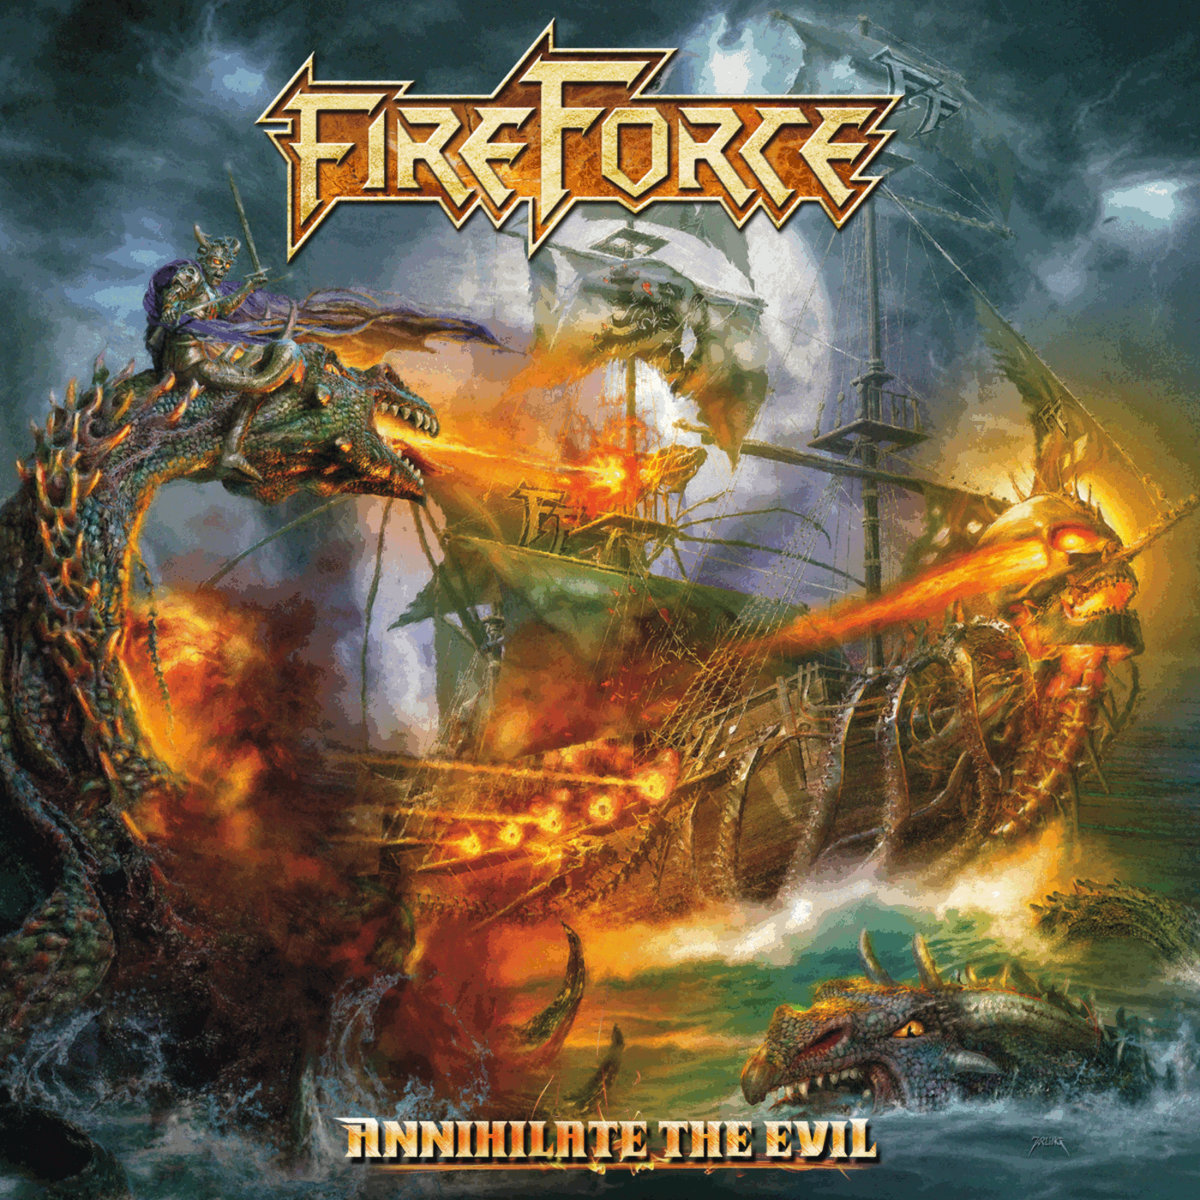 fireforce annihiliate the evil album cover